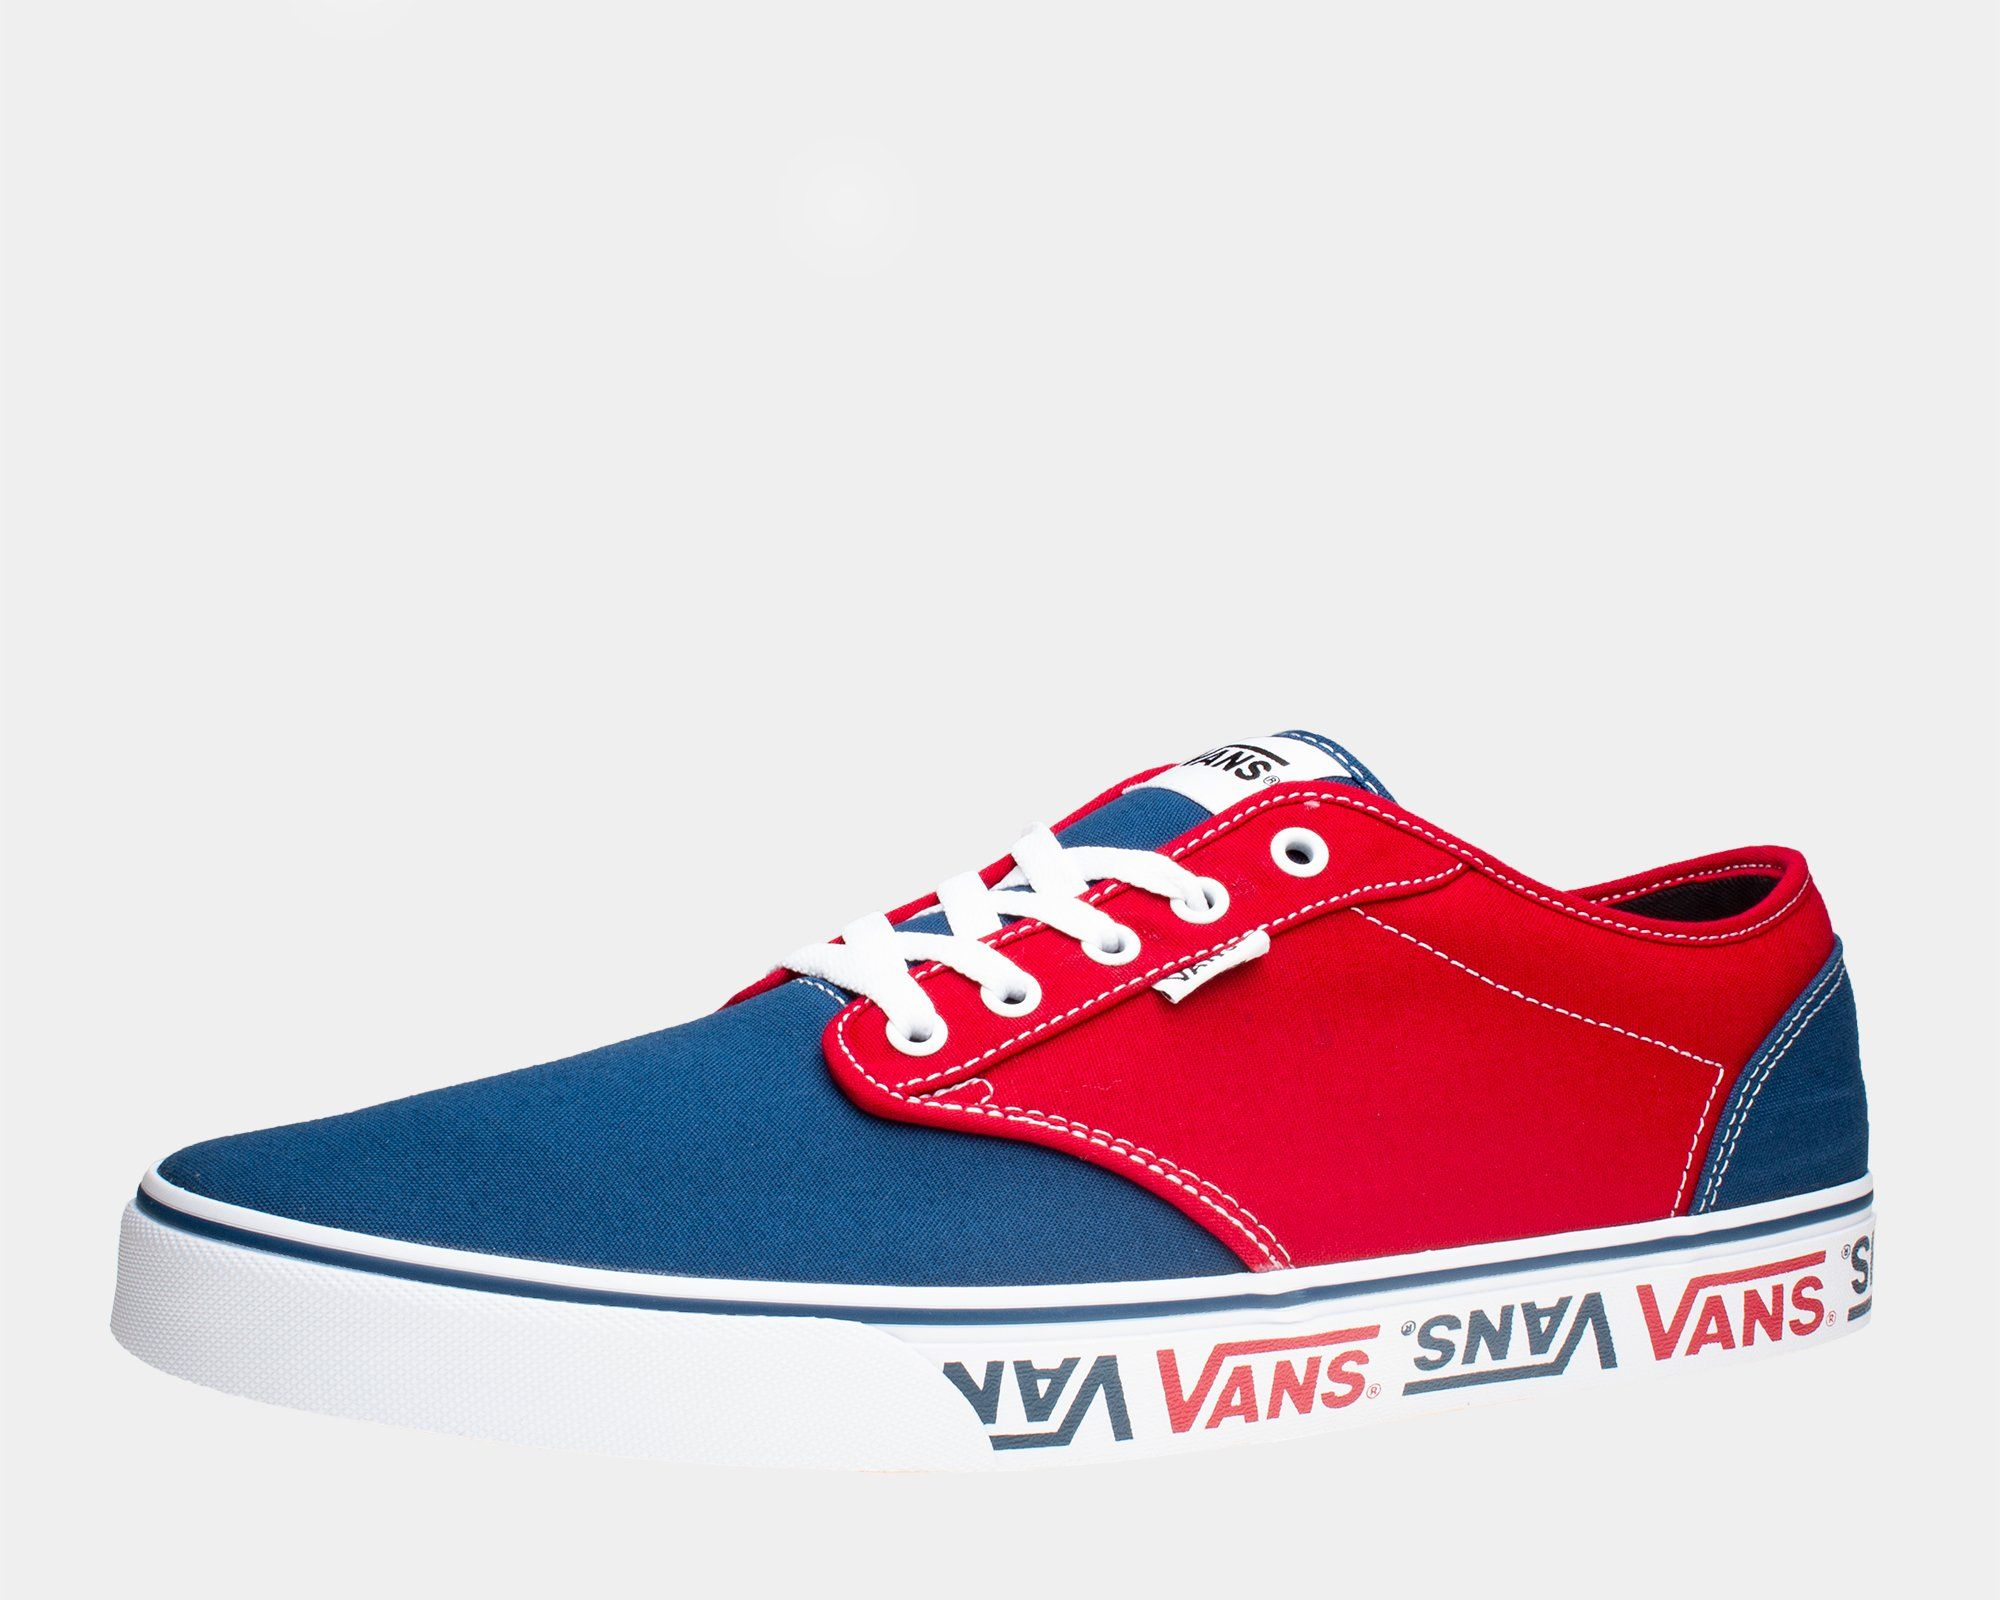 e7c15e6e1044 Vans Atwood (Sidewall Logo) Salior Blue Mens sizes 14   up big shoes for  big men international shipping available